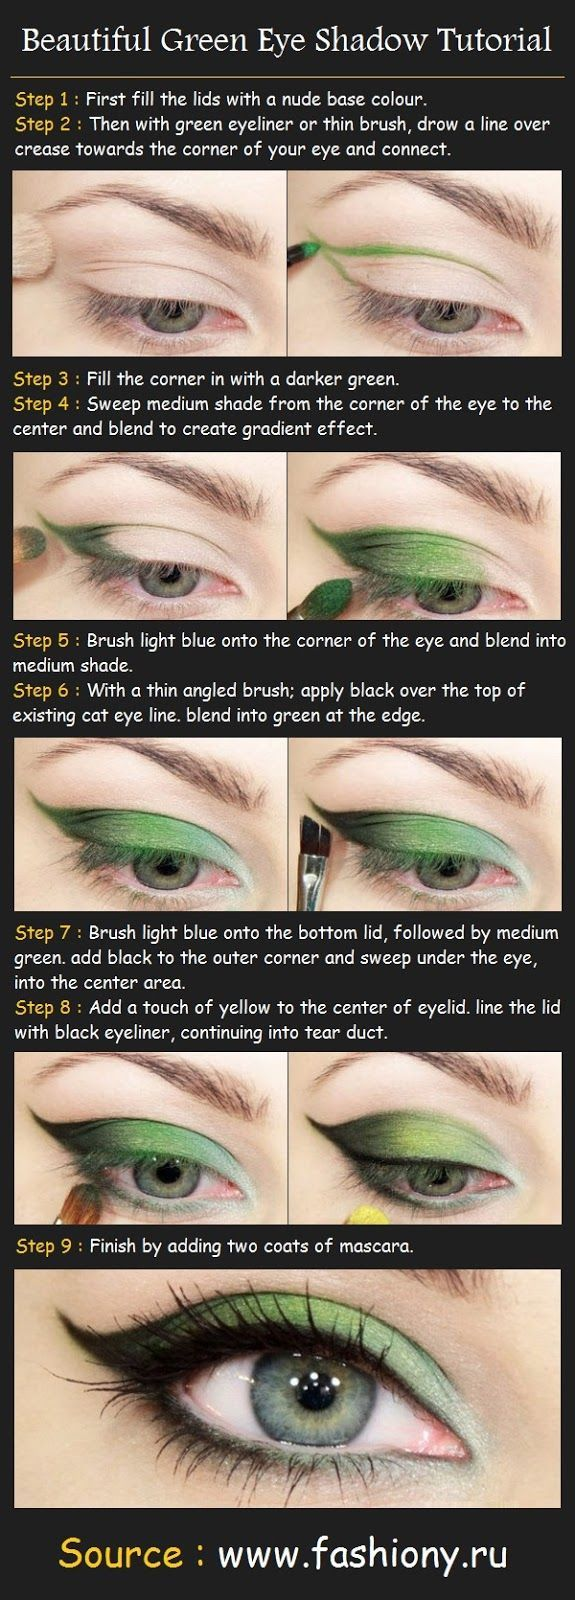 55 best eyes lips face images on pinterest beauty makeup make beautiful green eye shadow tutorial how to do step 1 first fill the lids with a nude base colour step 2 then with green ey baditri Images